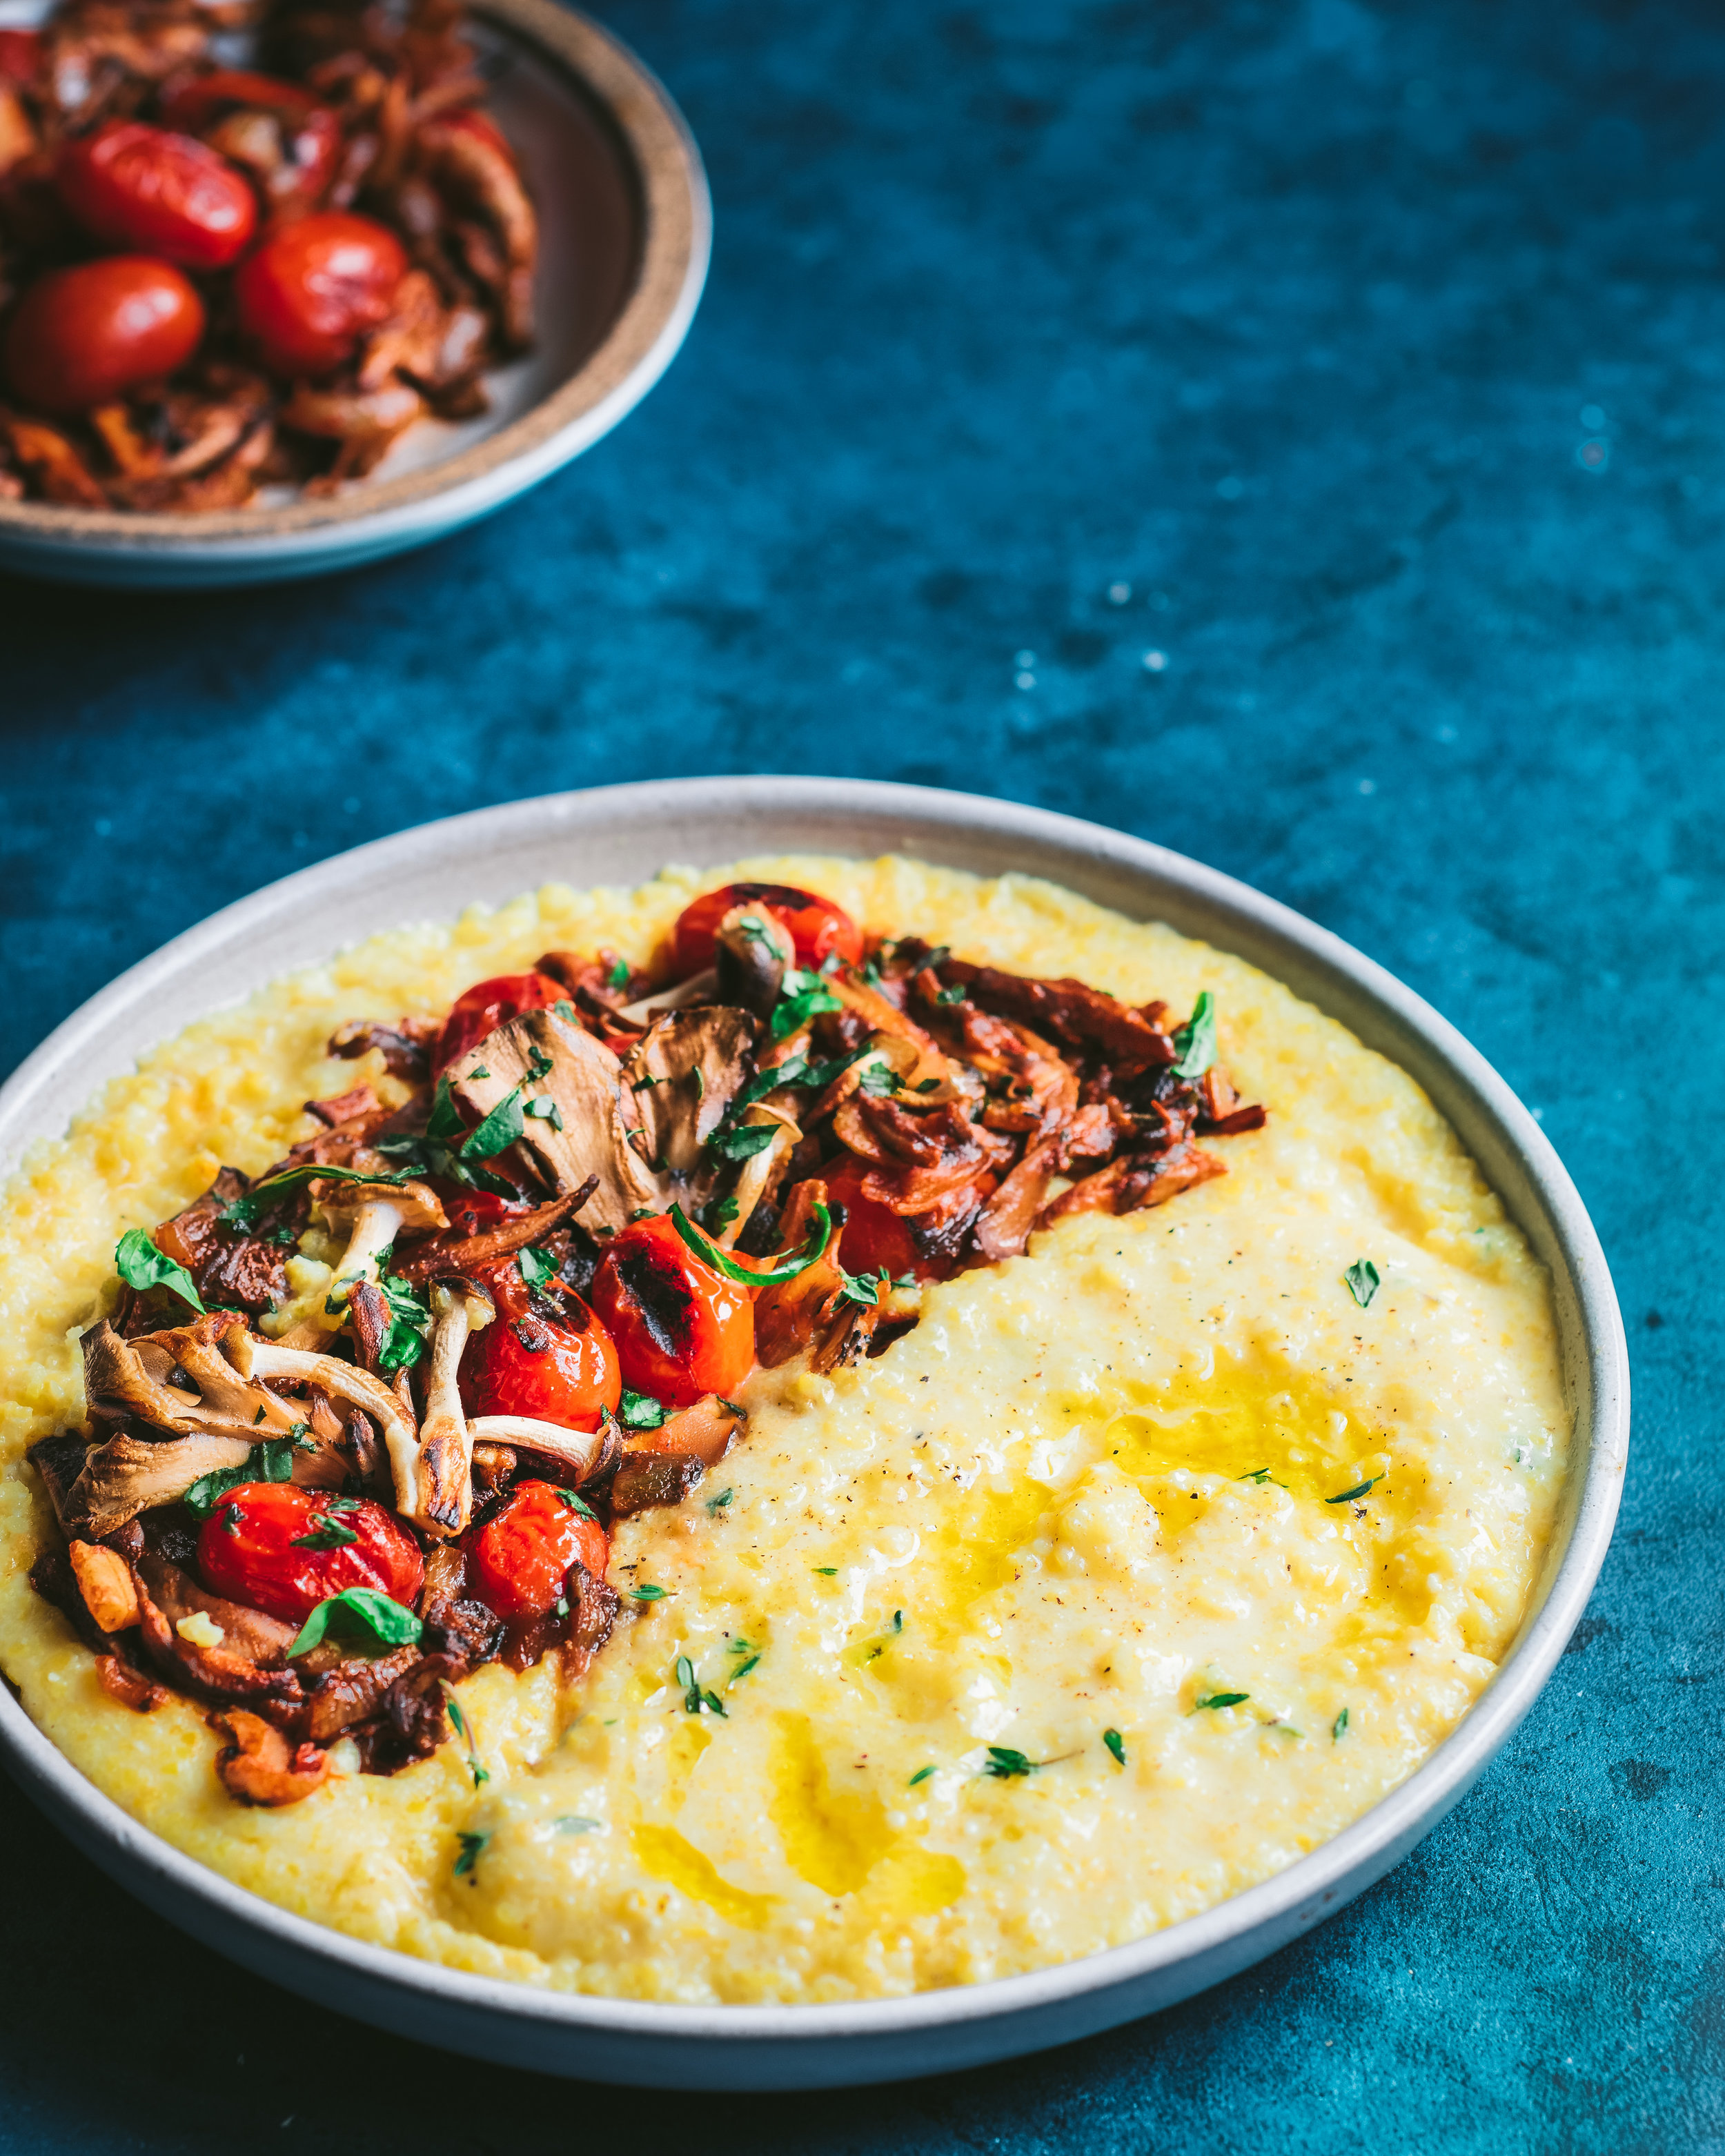 Creamy Vegan Polenta with Wild Mushroom and Tomato Ragu